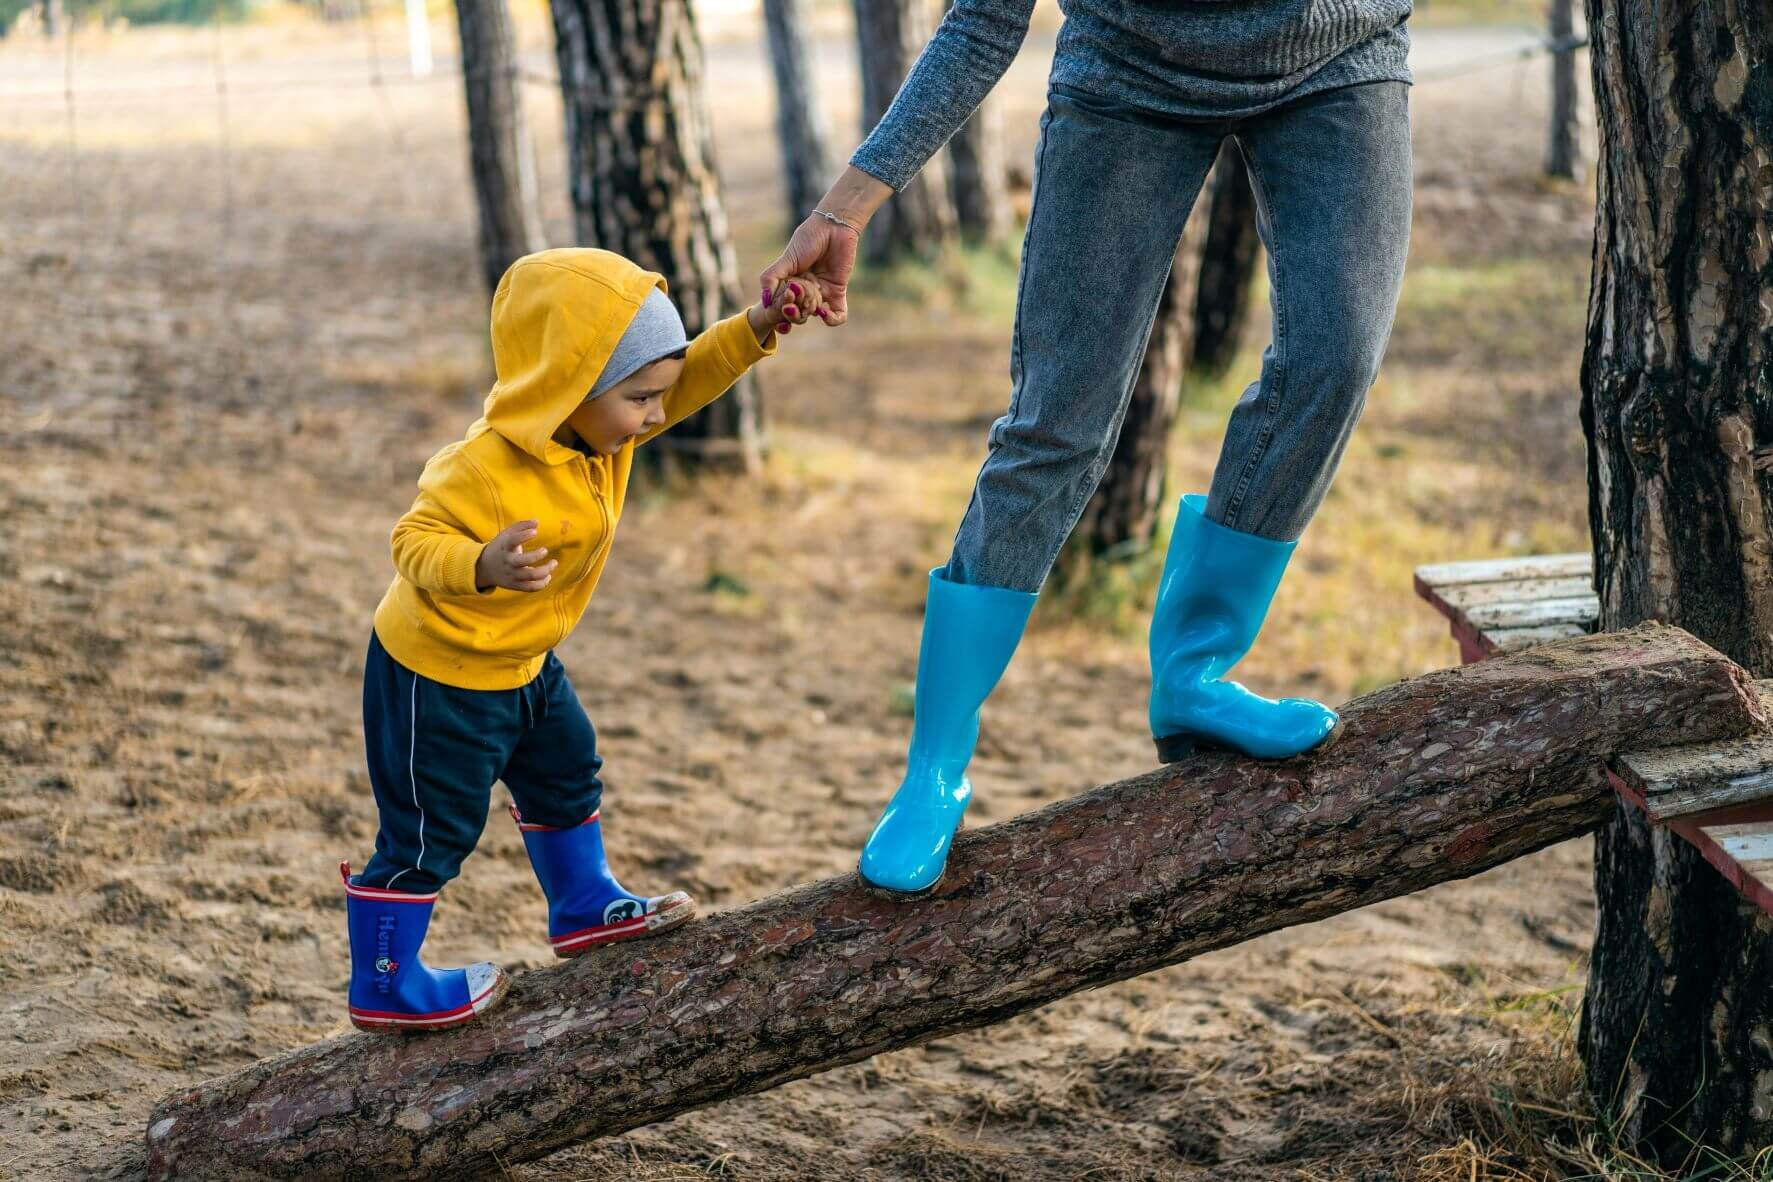 Child Support and Equal Parenting Time in AZ